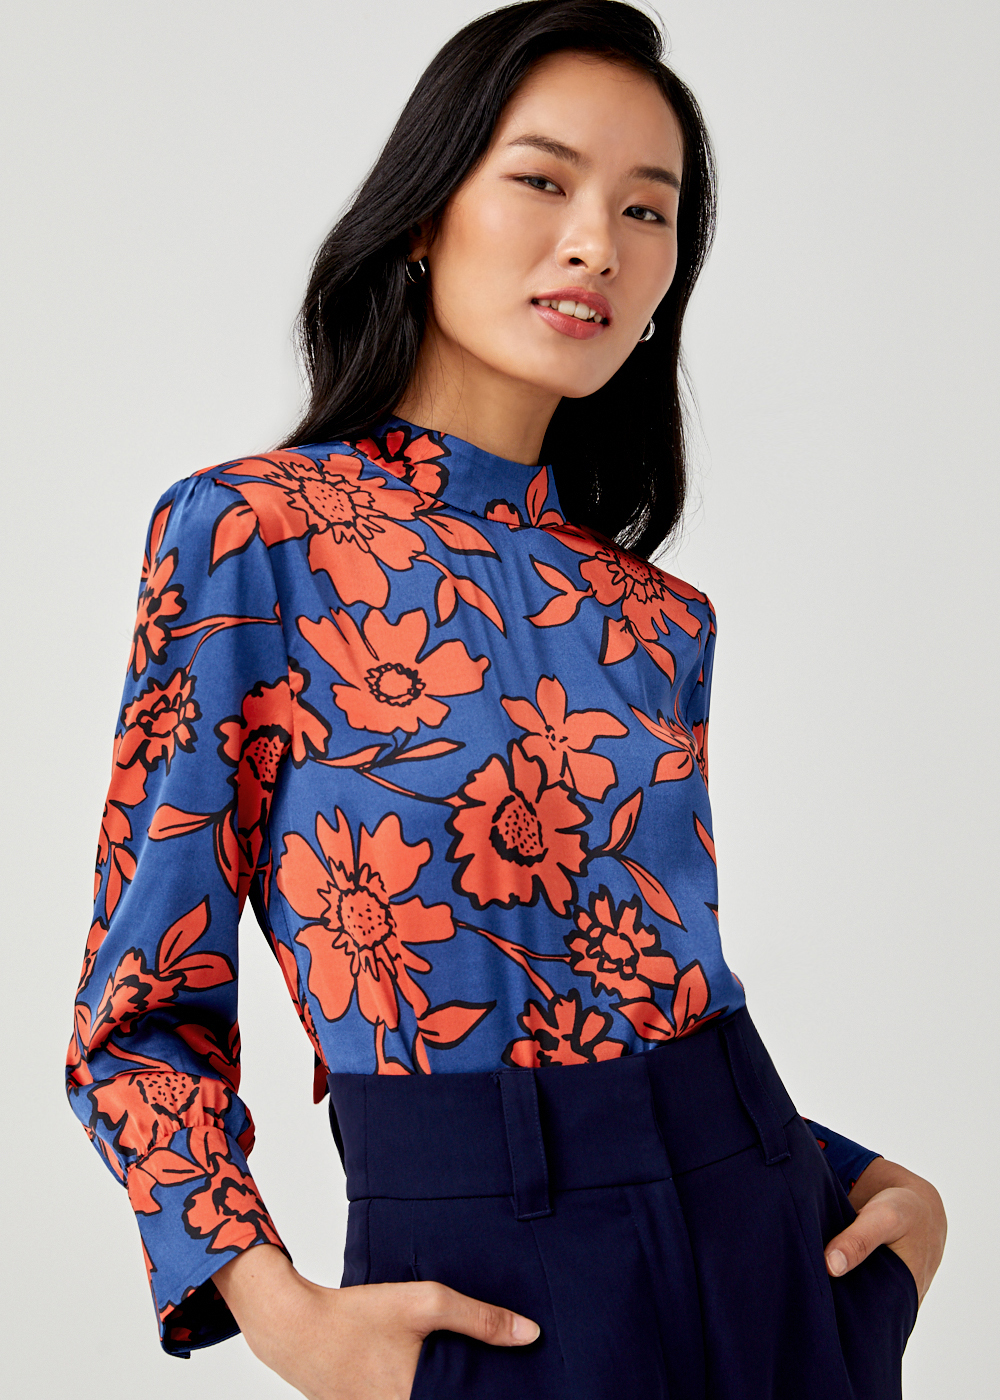 Elsie Satin Printed Blouse